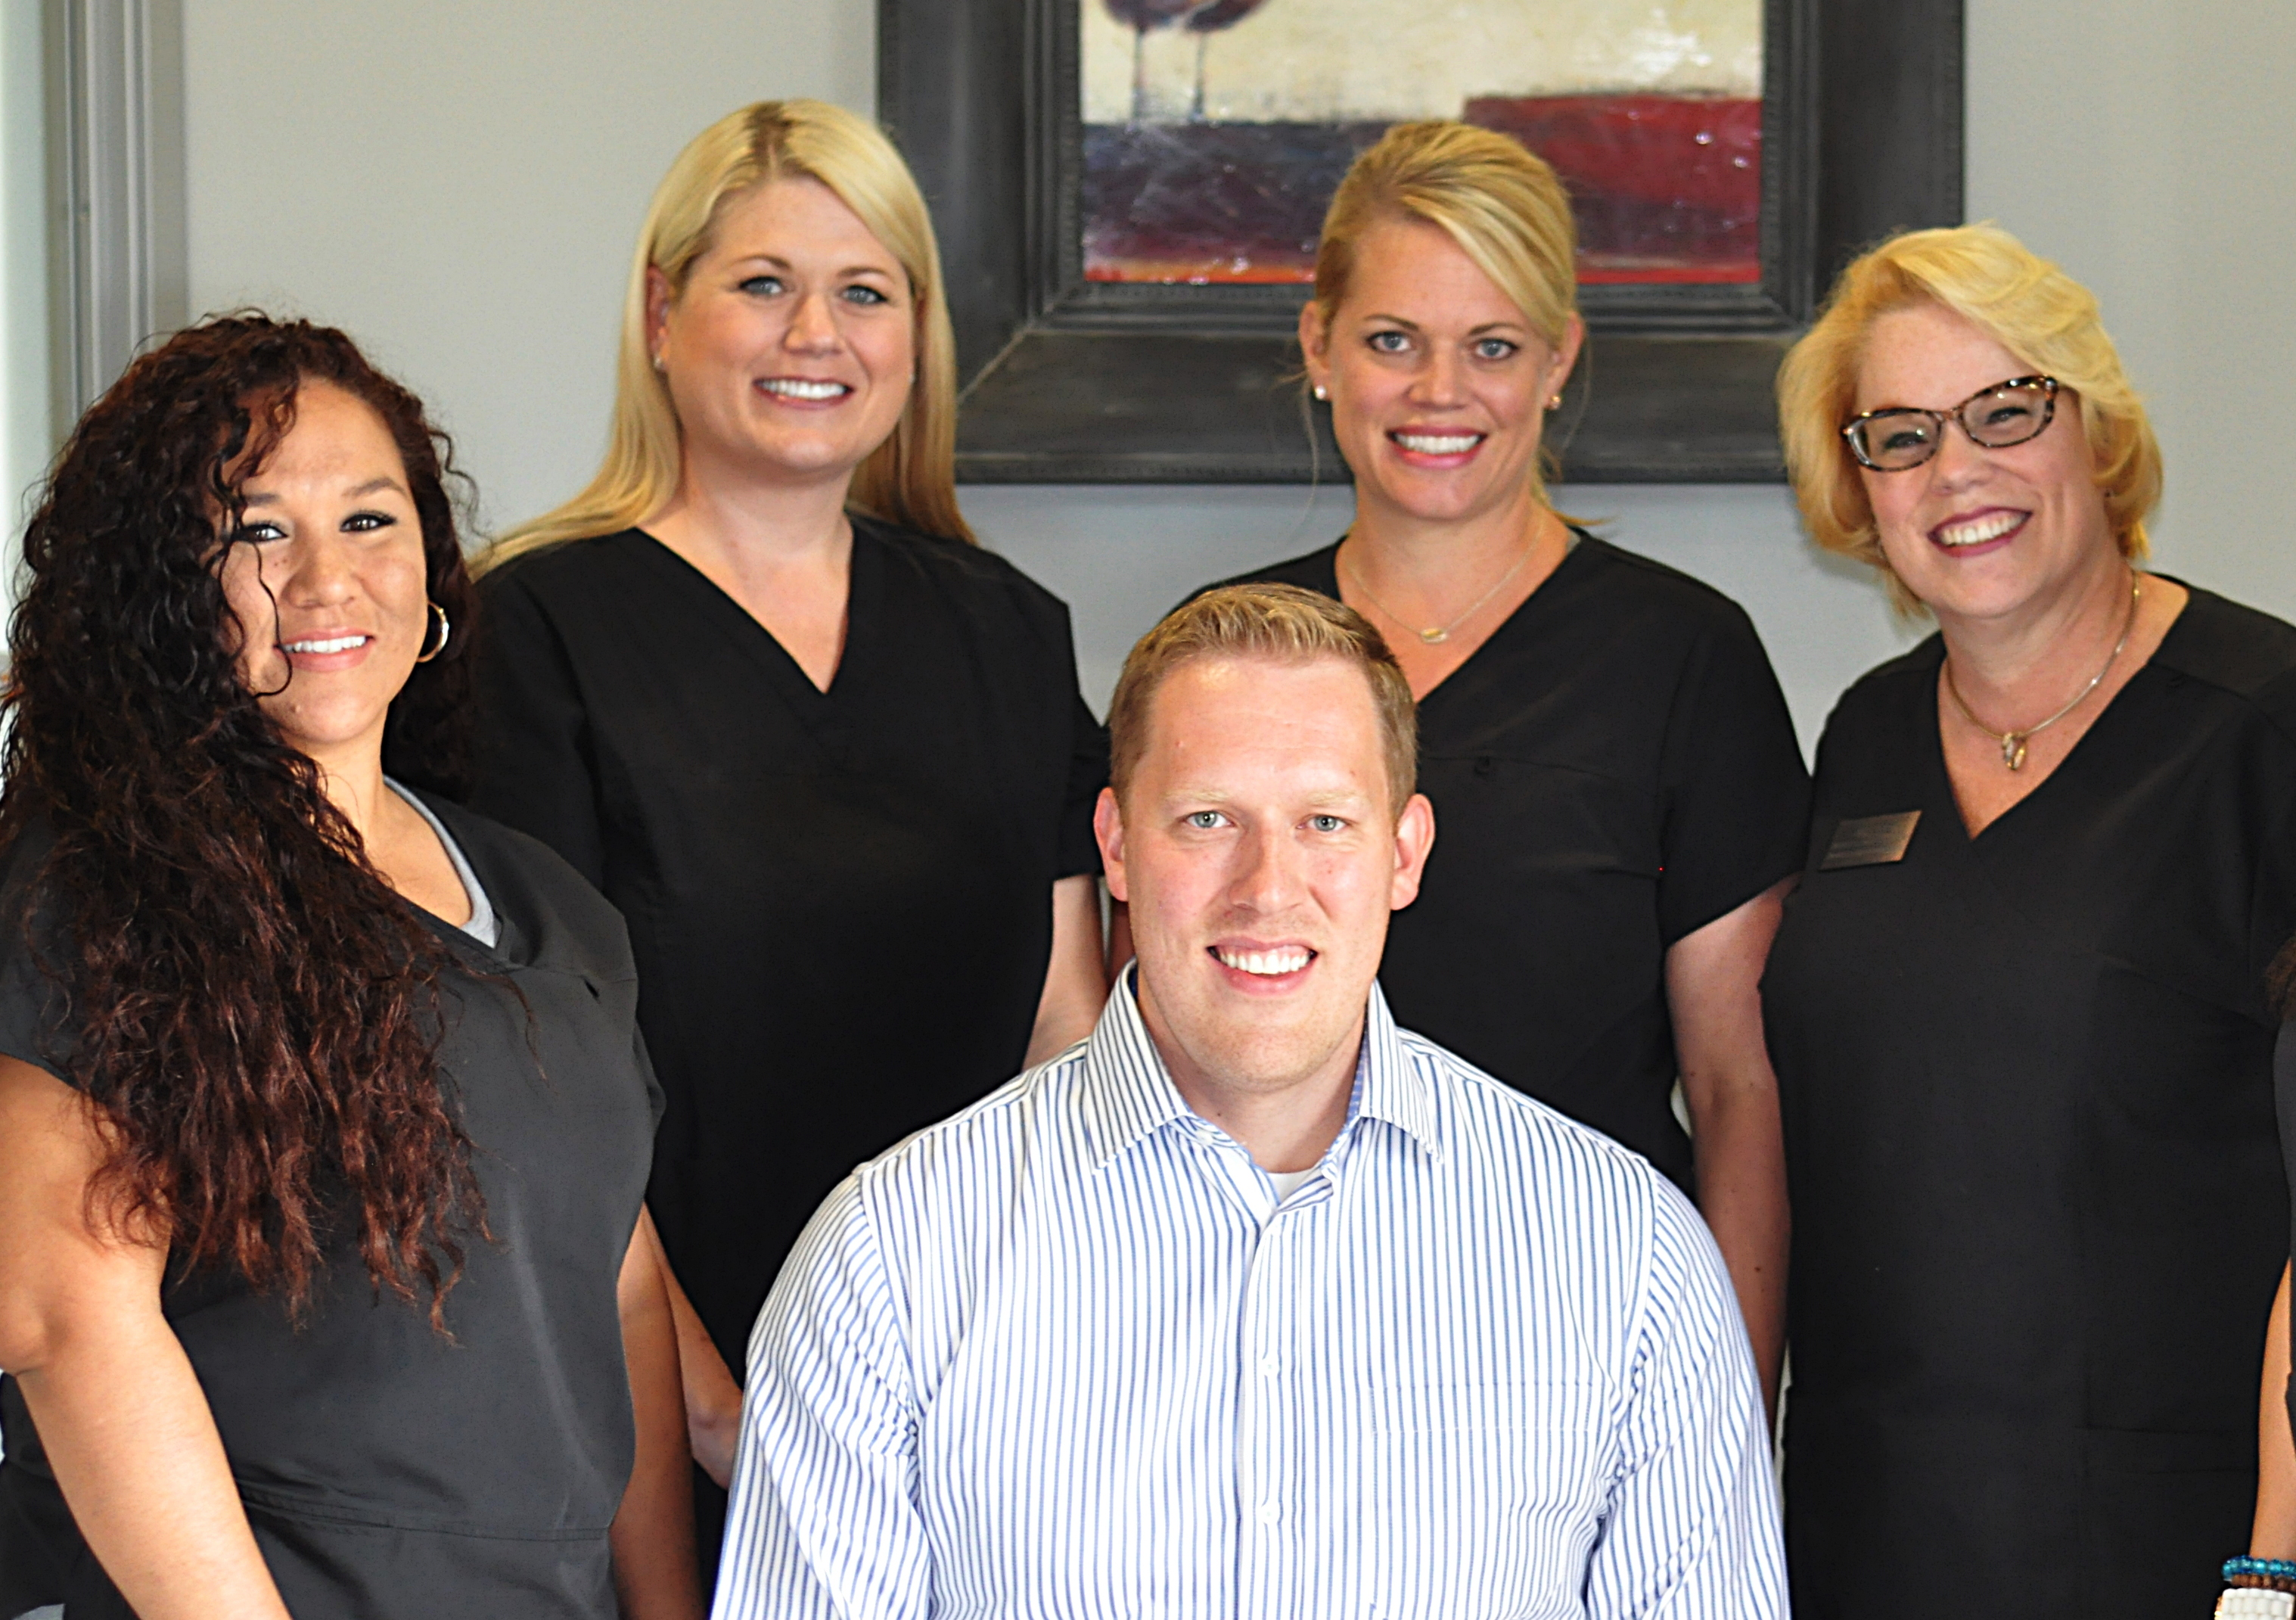 Dental Center of Midlothian reviews | Cosmetic Dentists at 800 Silken Crossing - Midlothian TX